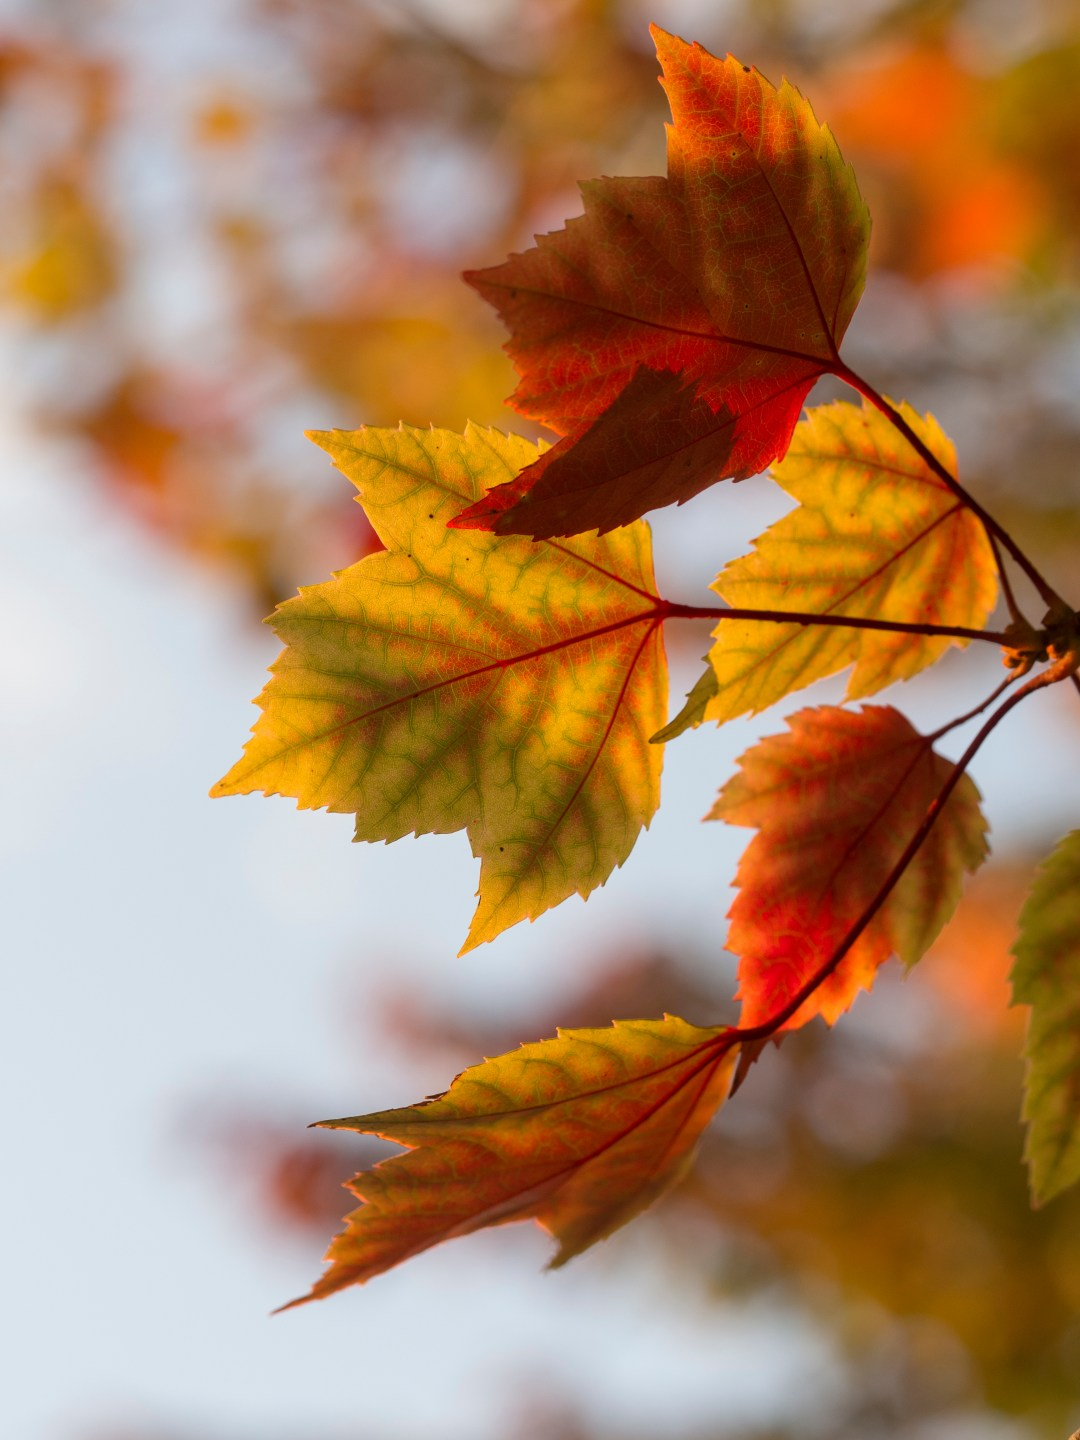 Fall Season Wallpapers Hd Leaves Leaf Fall And Autumn Hd Photo By Aaron Burden